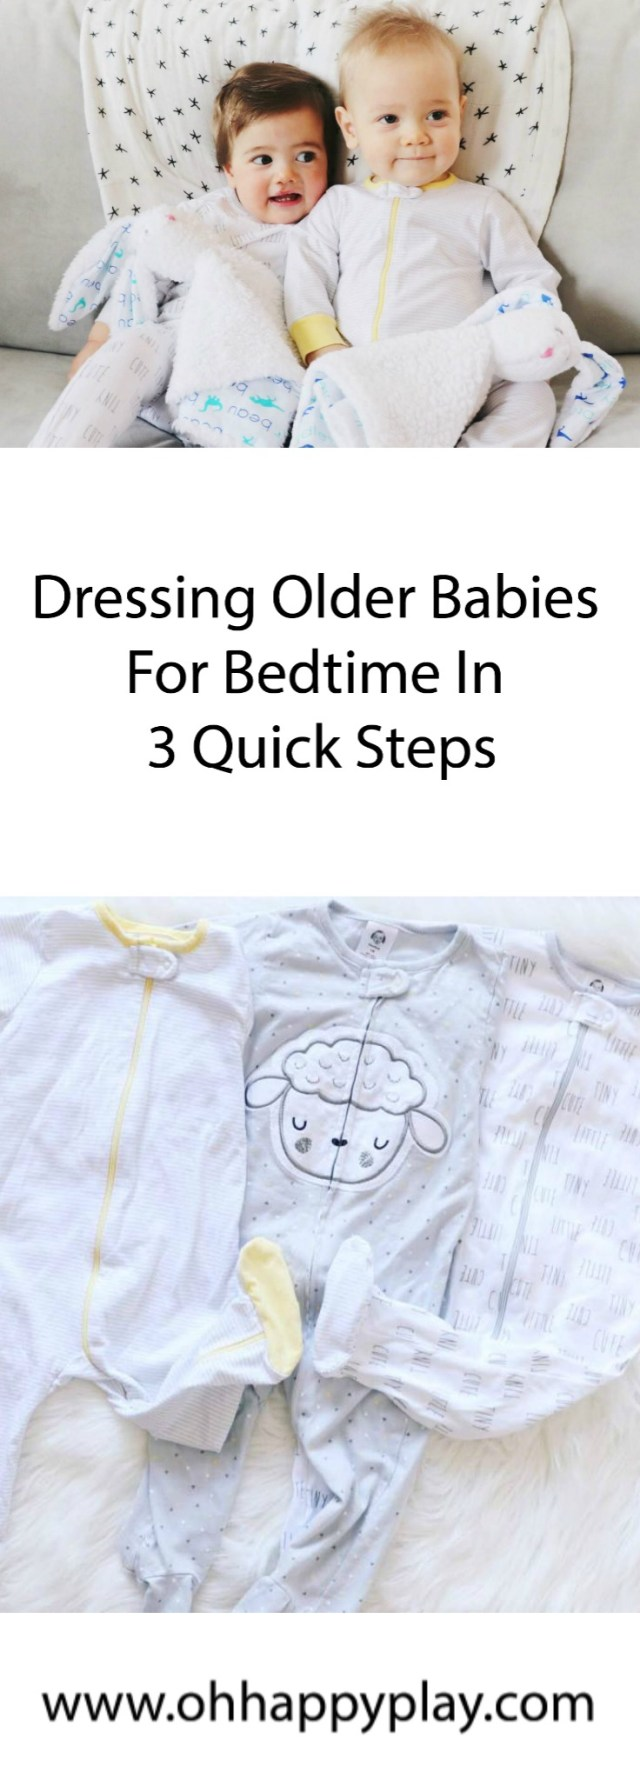 Gerber Essentials: Dressing Older Babies For Bedtime In 3 Quick Steps from Oh Happy Play, Florida Motherhood blogger. Check it out now!